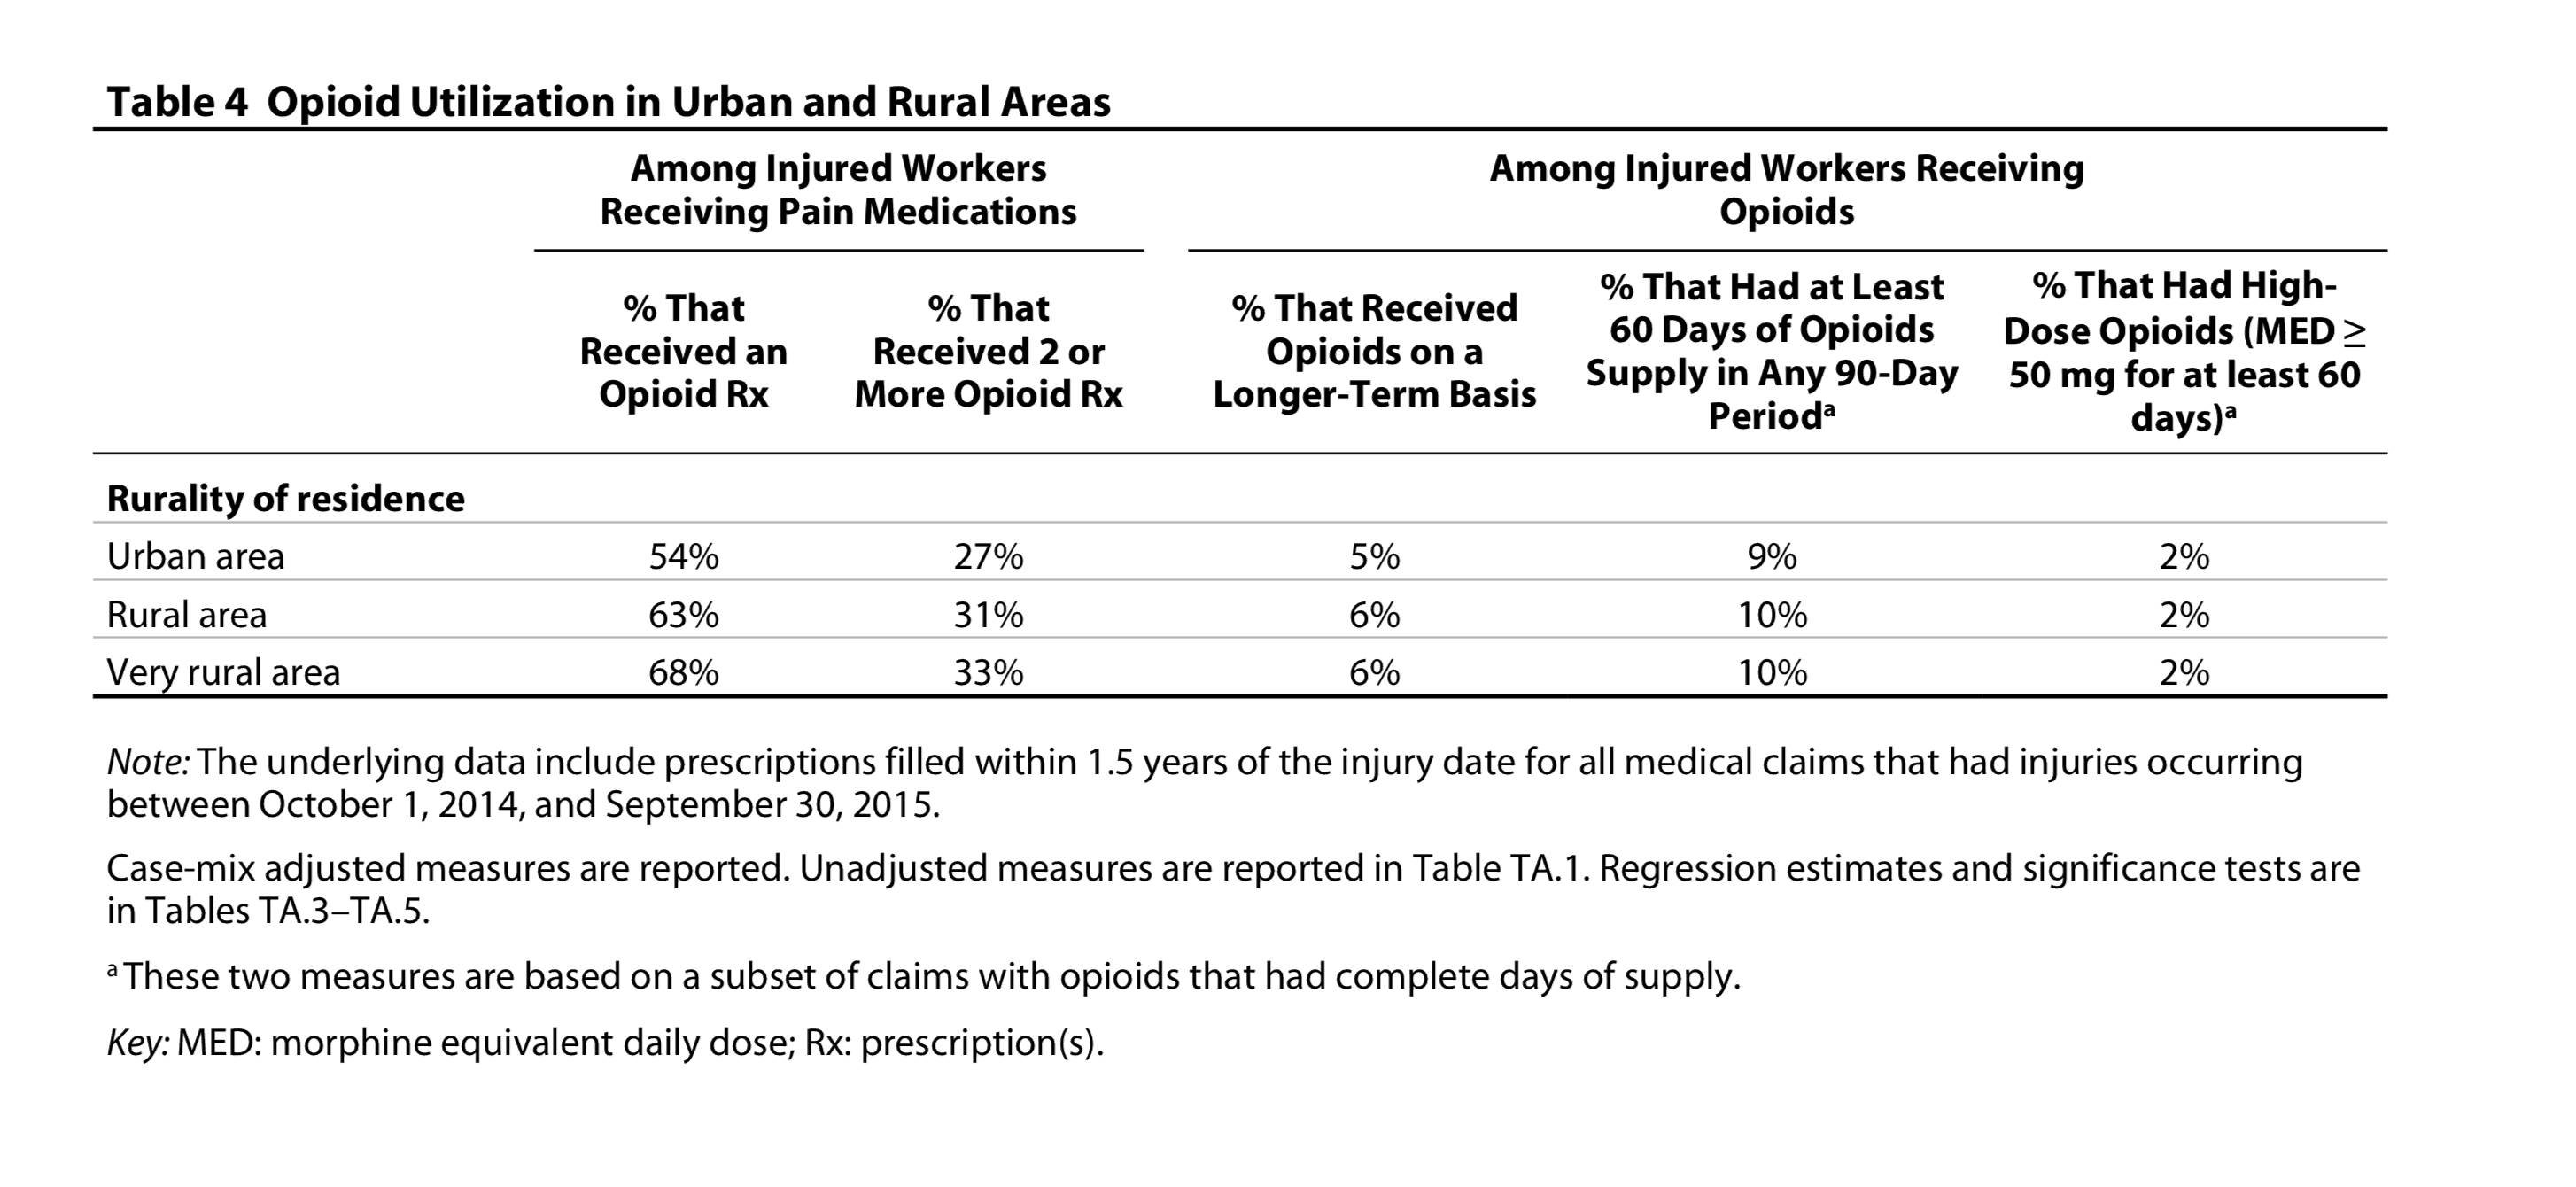 Injured Workers in Rural Areas More Likely to Receive Opioid